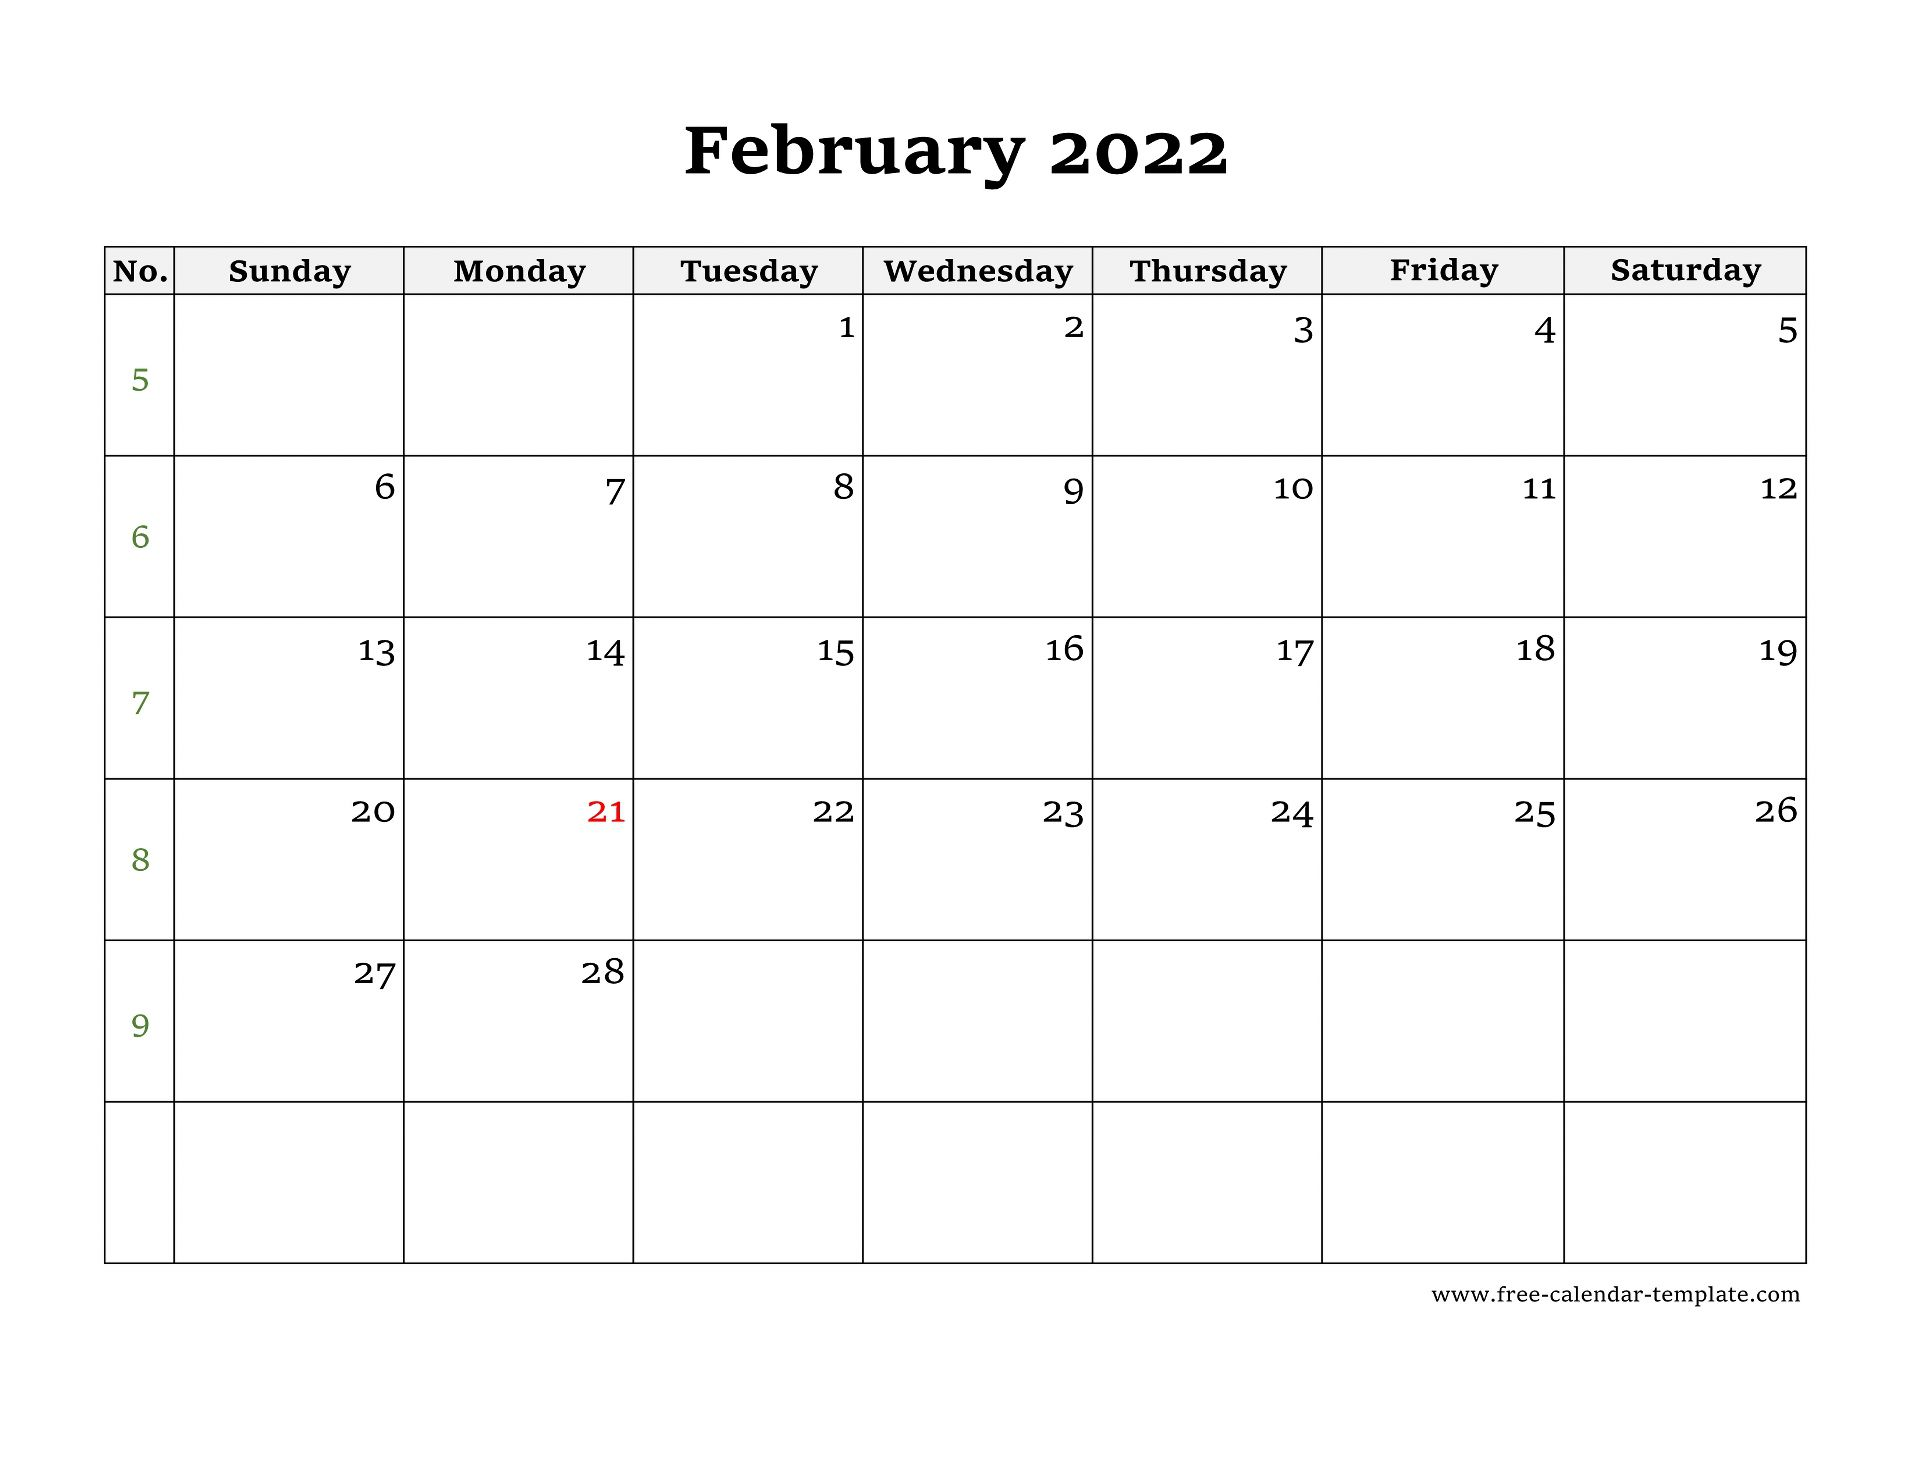 Sure, digital calendars are convenient — we can take them everyw. Simple February Calendar 2022 large box on each day for ...